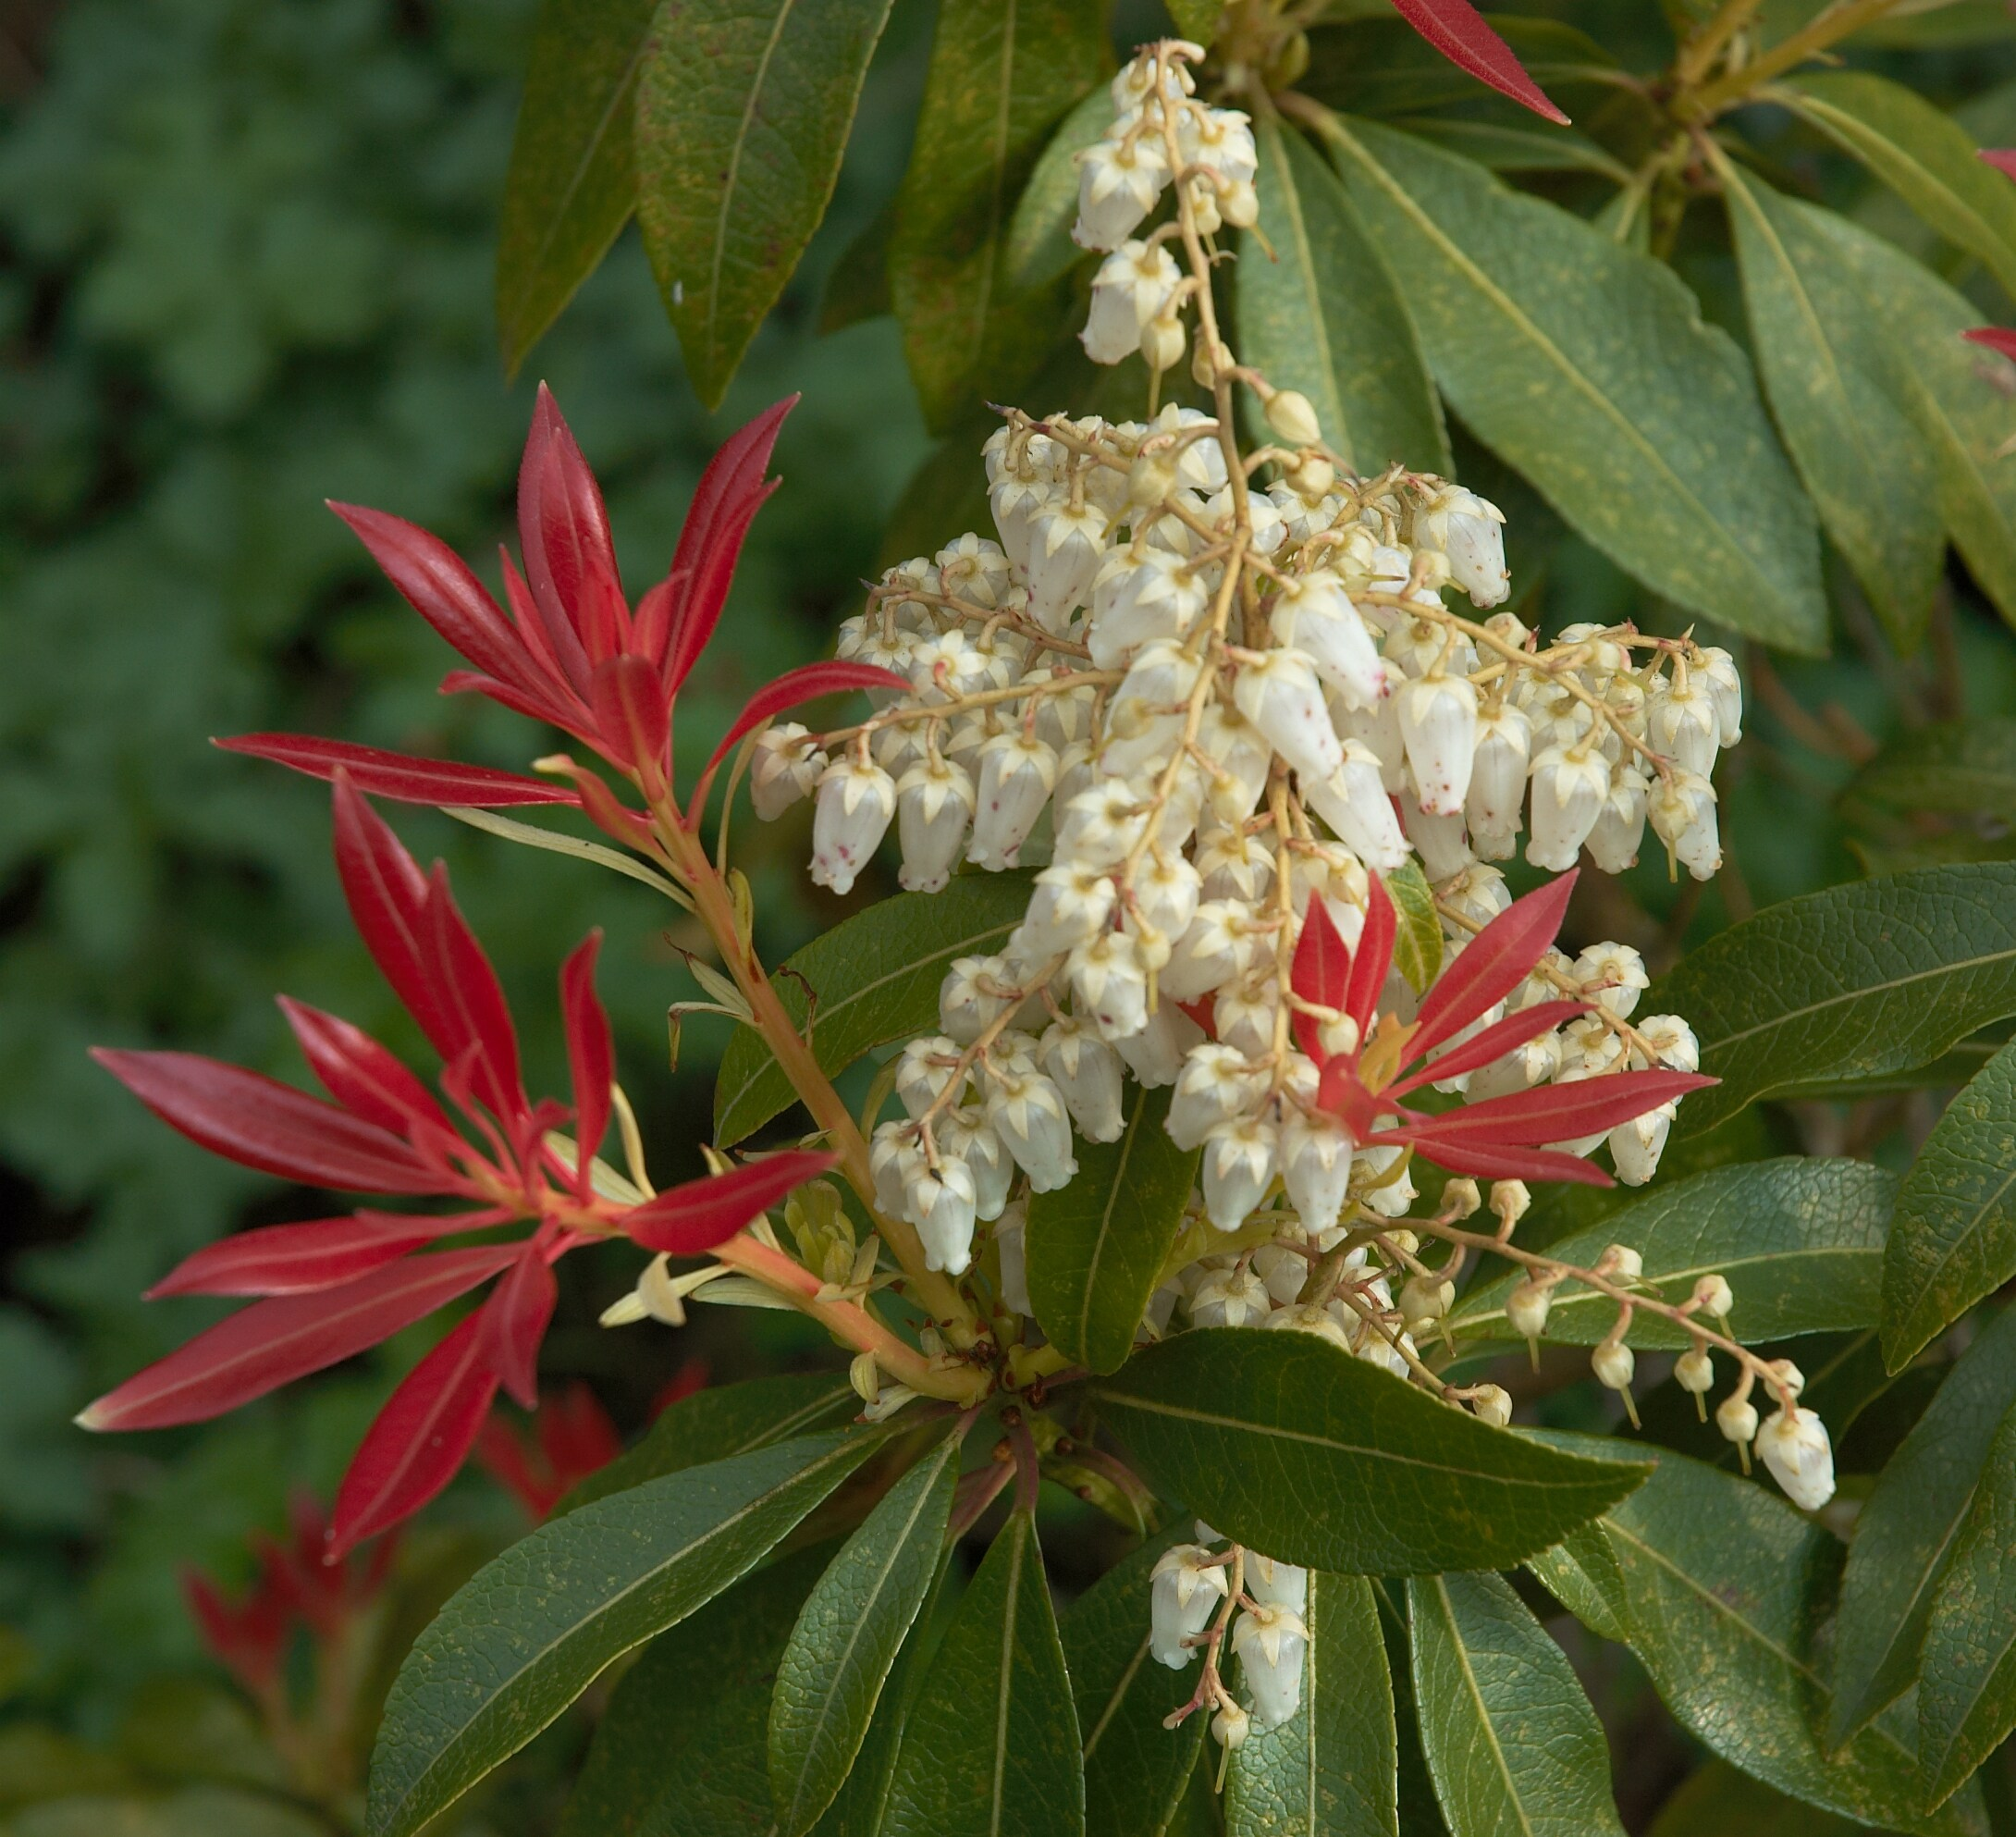 Deer resistant plants and shrubs pieris kalamazoo grand rapids michigan